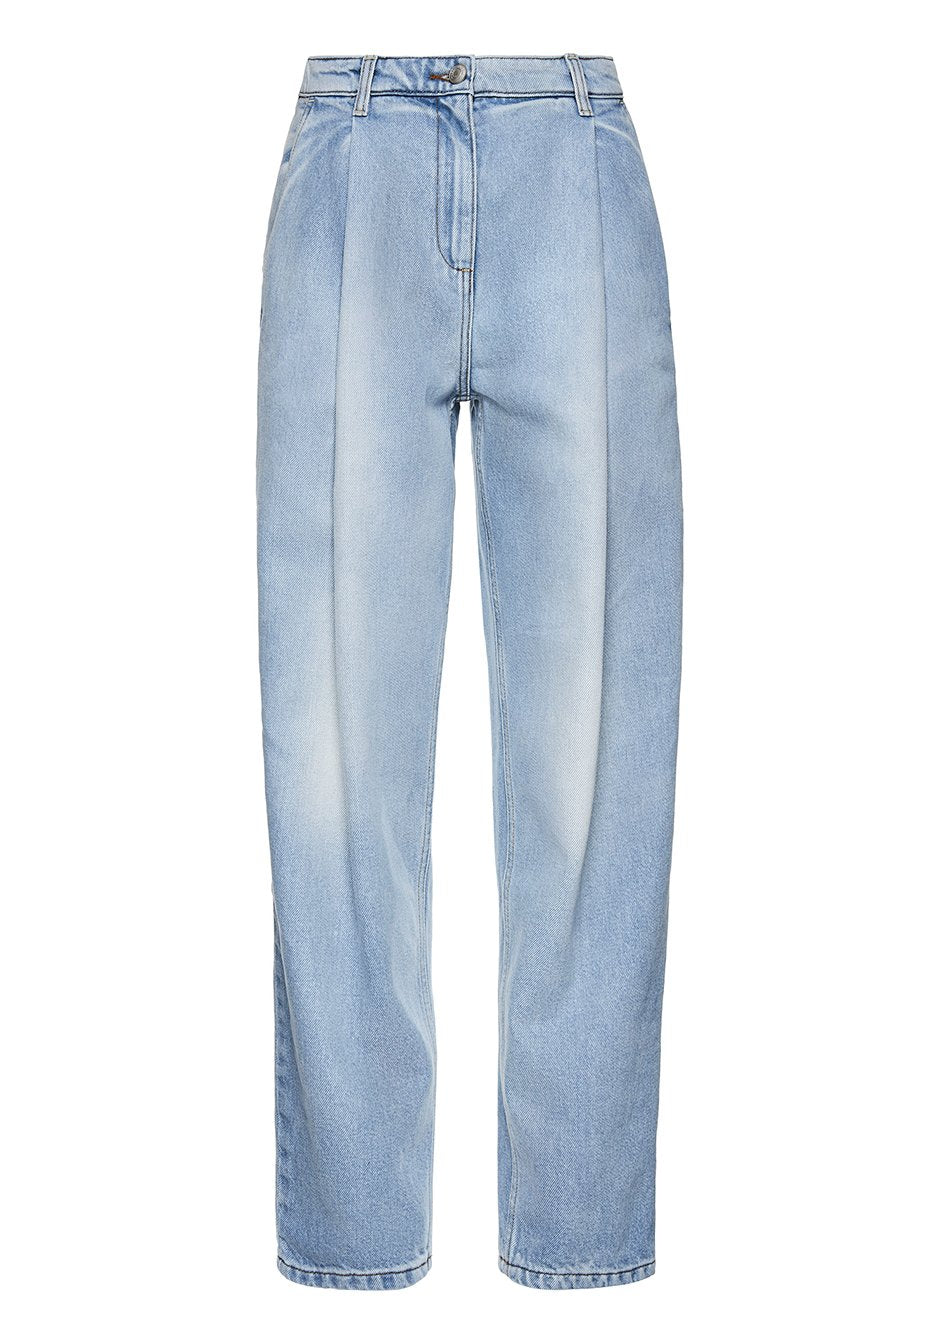 Totenes Light Blue Denim Pants